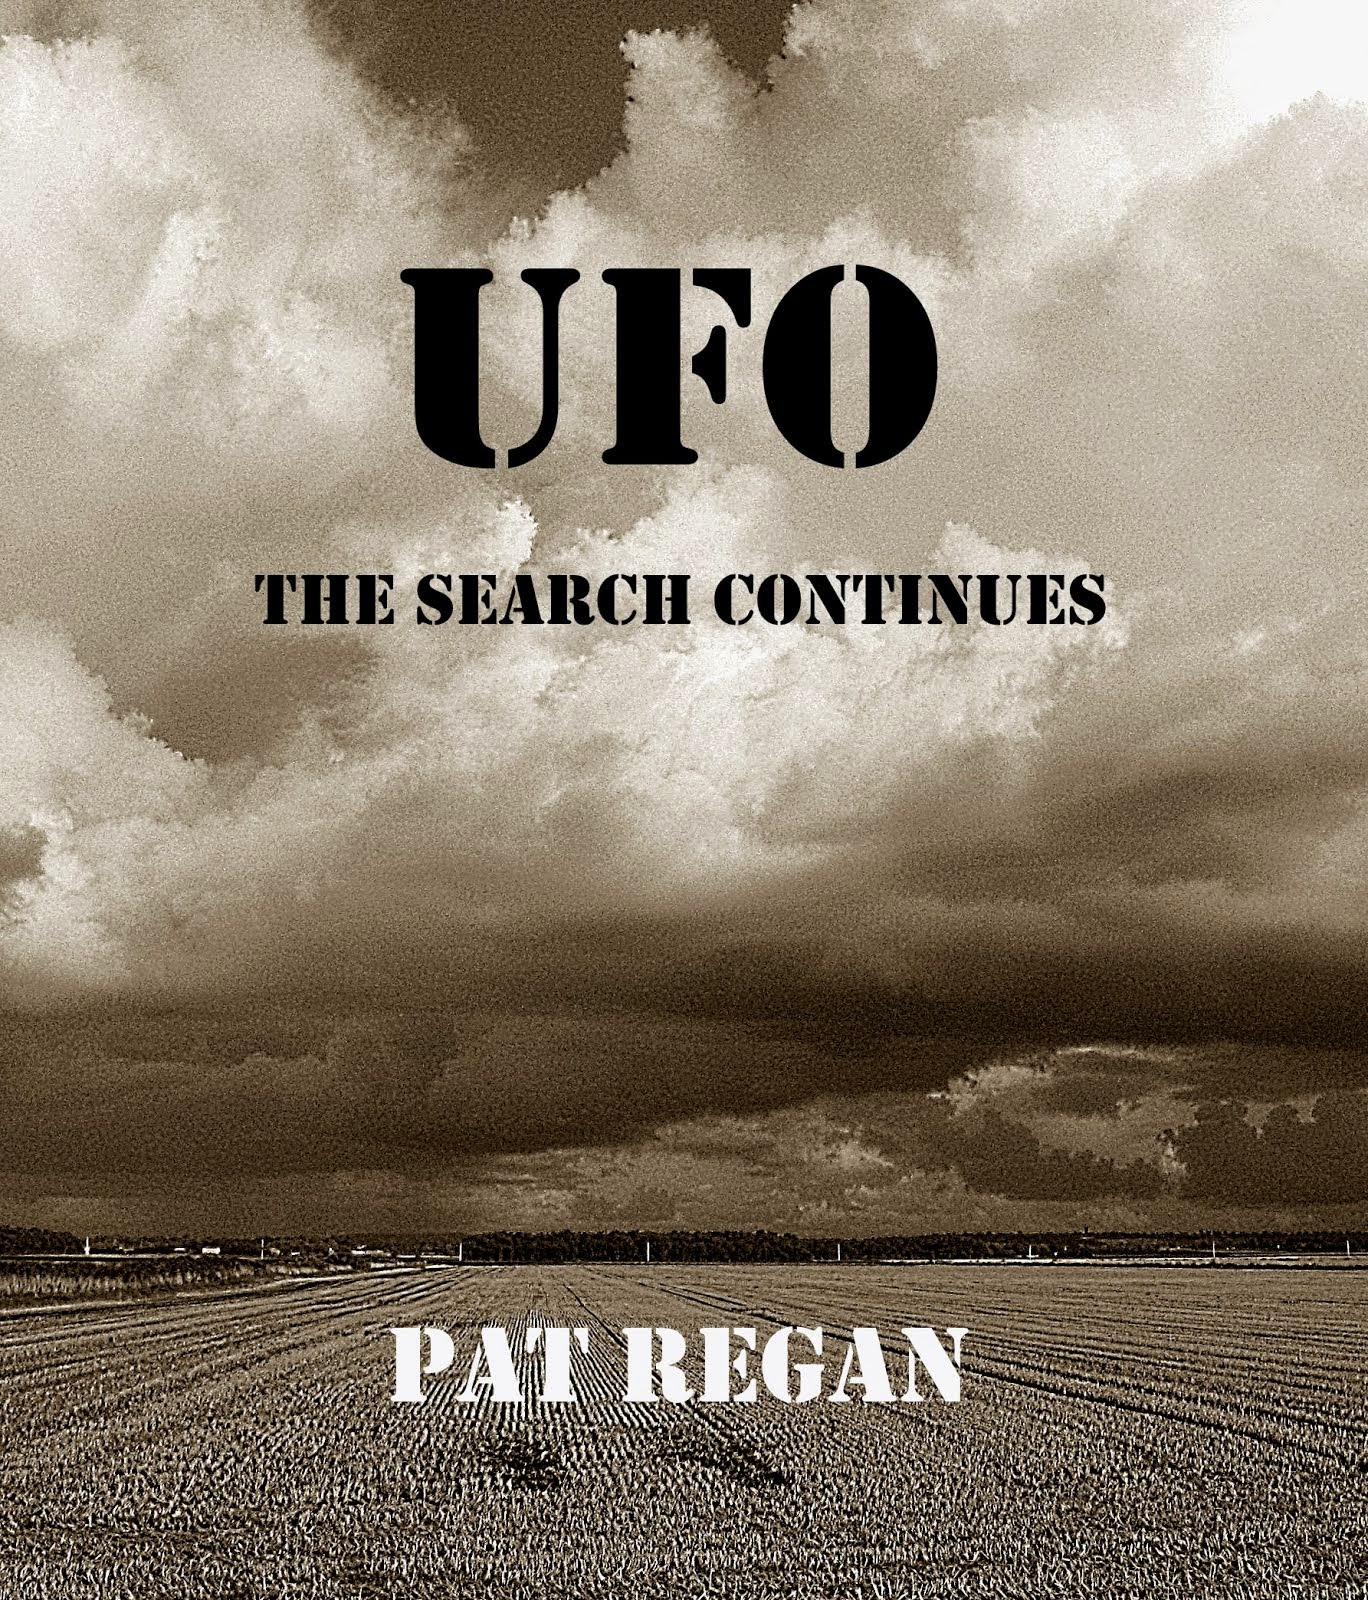 UFO: THE SEARCH CONTINUES